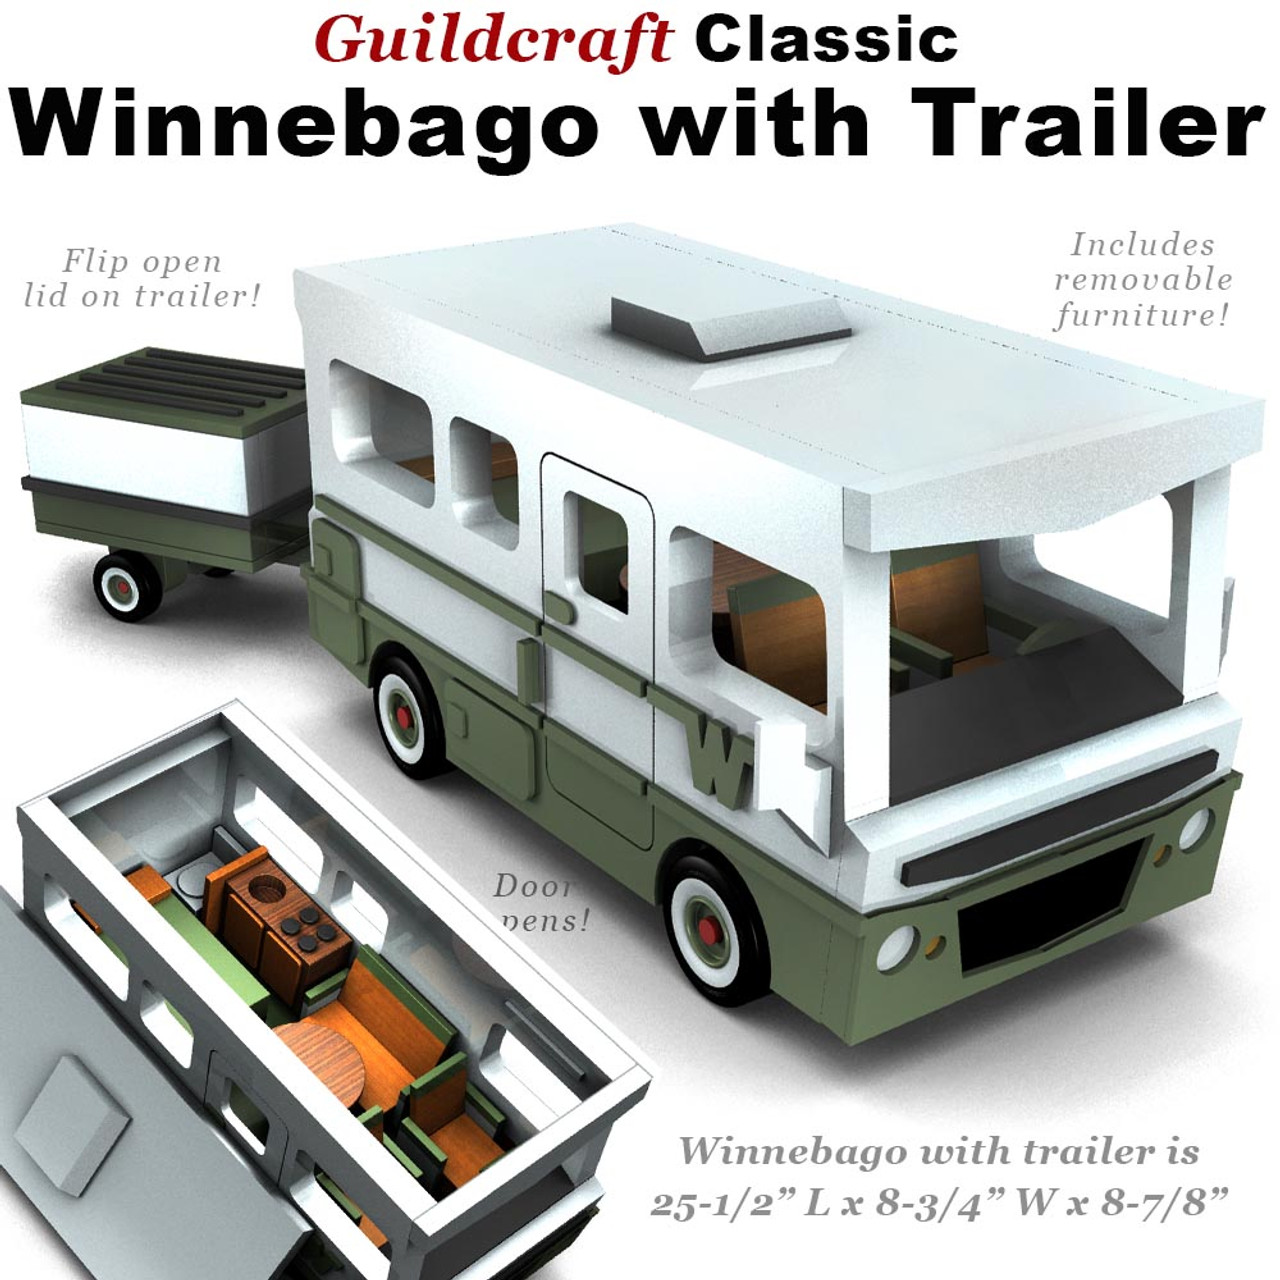 Guildcraft Classic Winnebago with Trailer Wood Toy Plans (PDF Download)